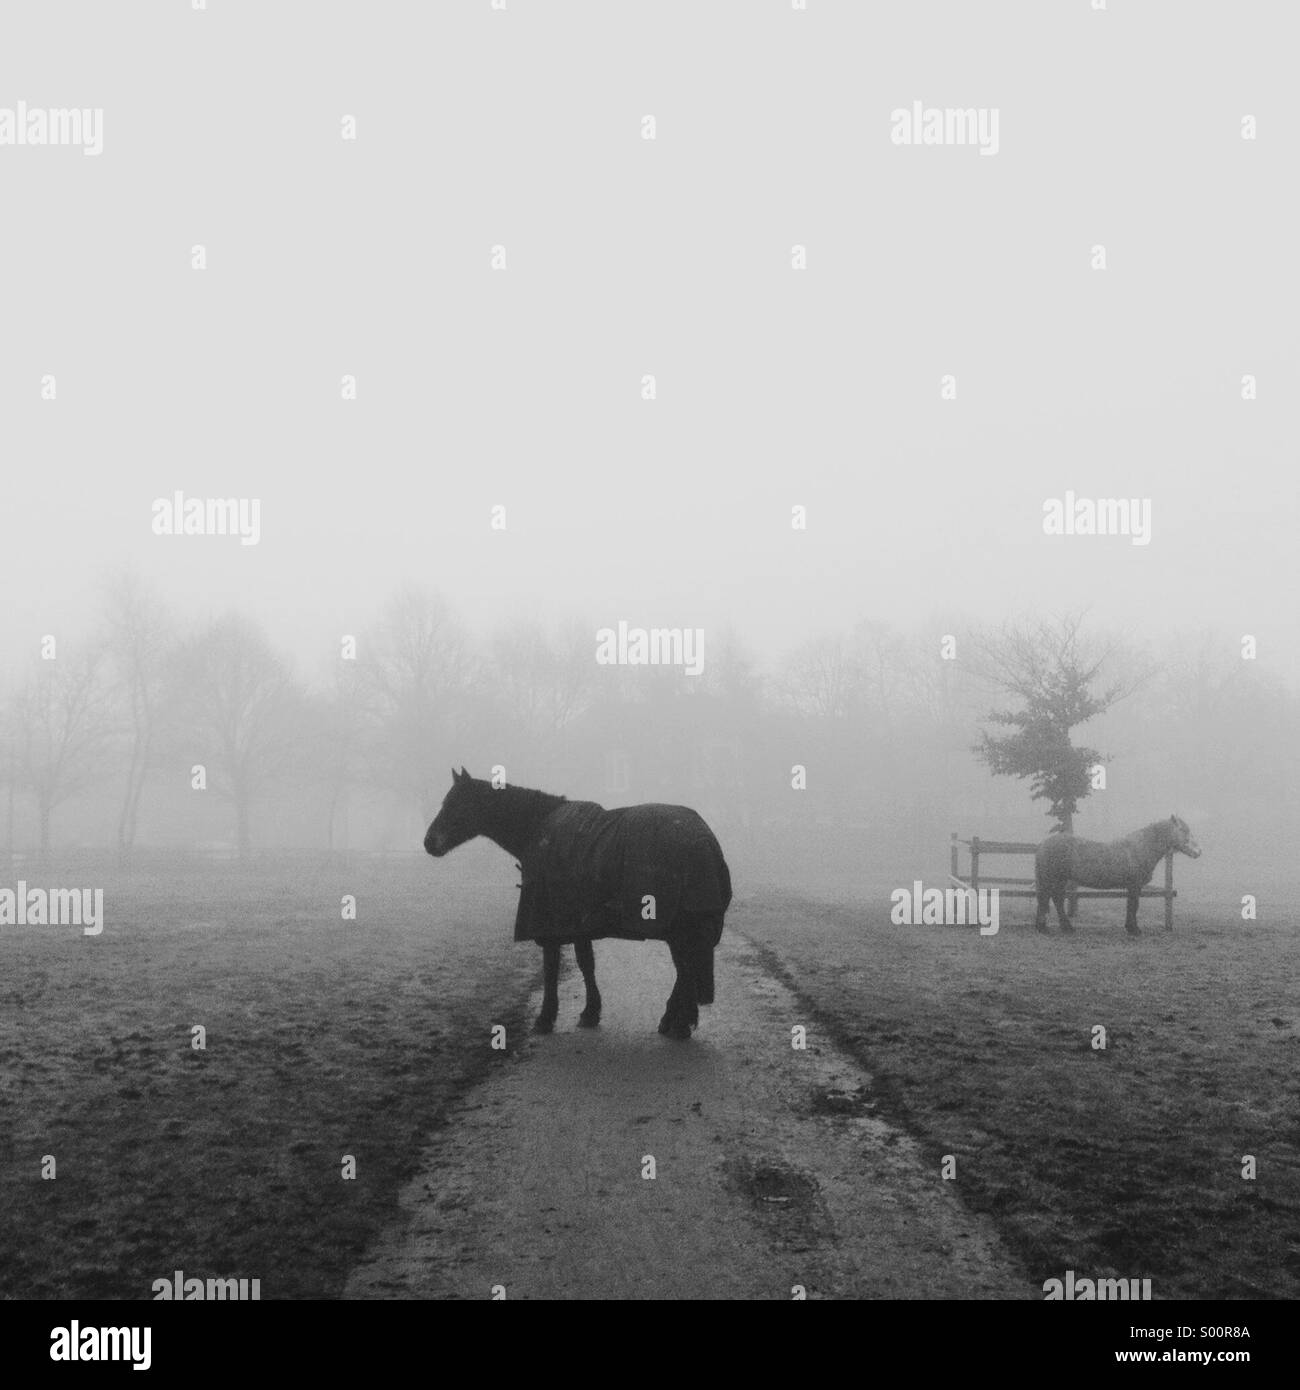 A horse wearing a coat steadfastly blocks the path in a misty scene. A second horse in the distance. - Stock Image